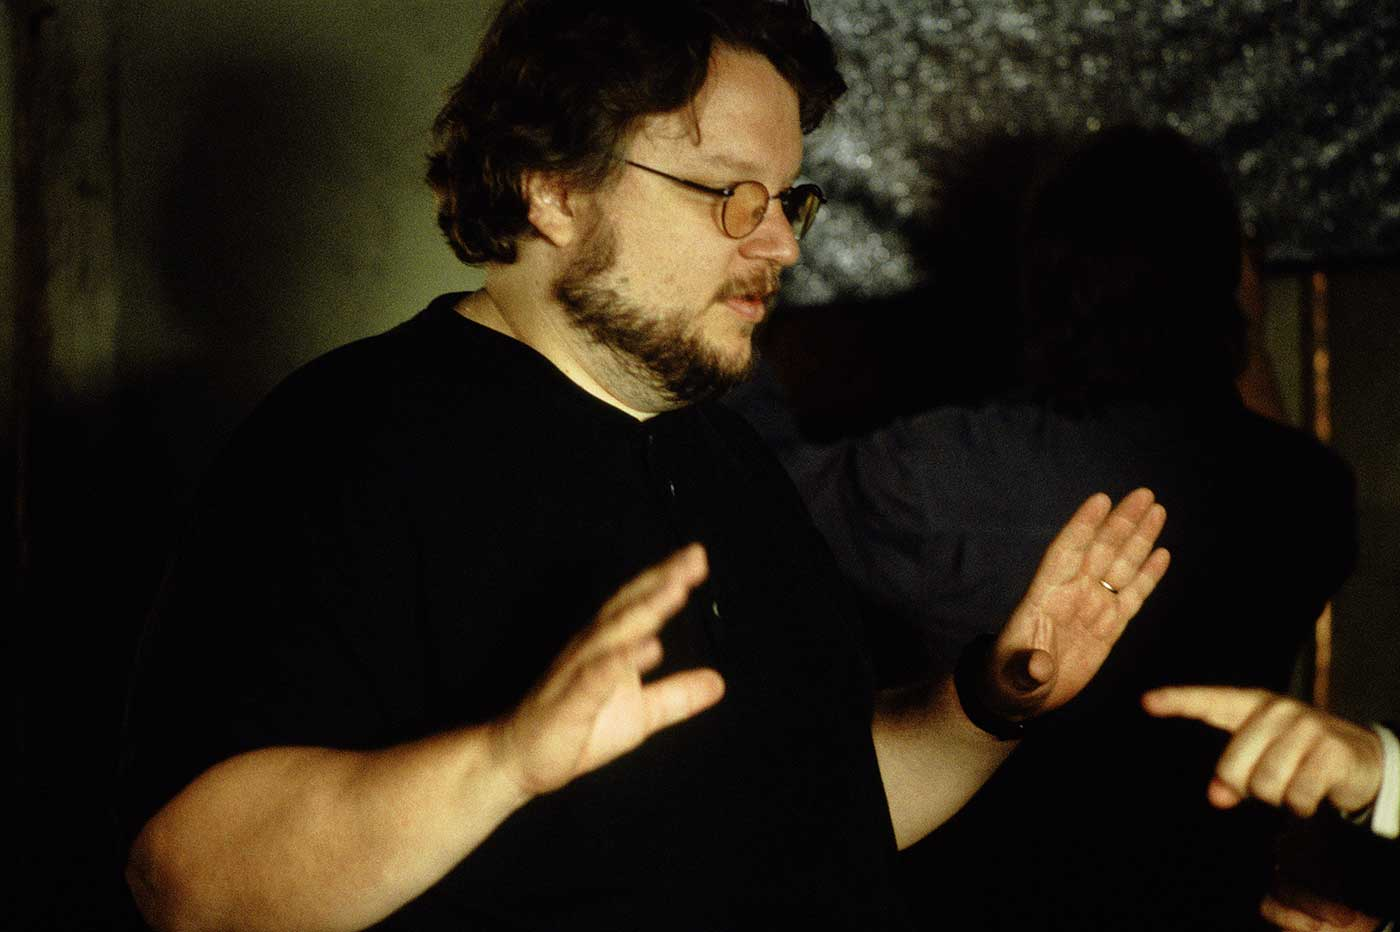 Guillermo del Toro completed his trilogy of Spanish-language dark fantasies in 2006 with this film inspired by years of notes and doodles in his personal notebooks.